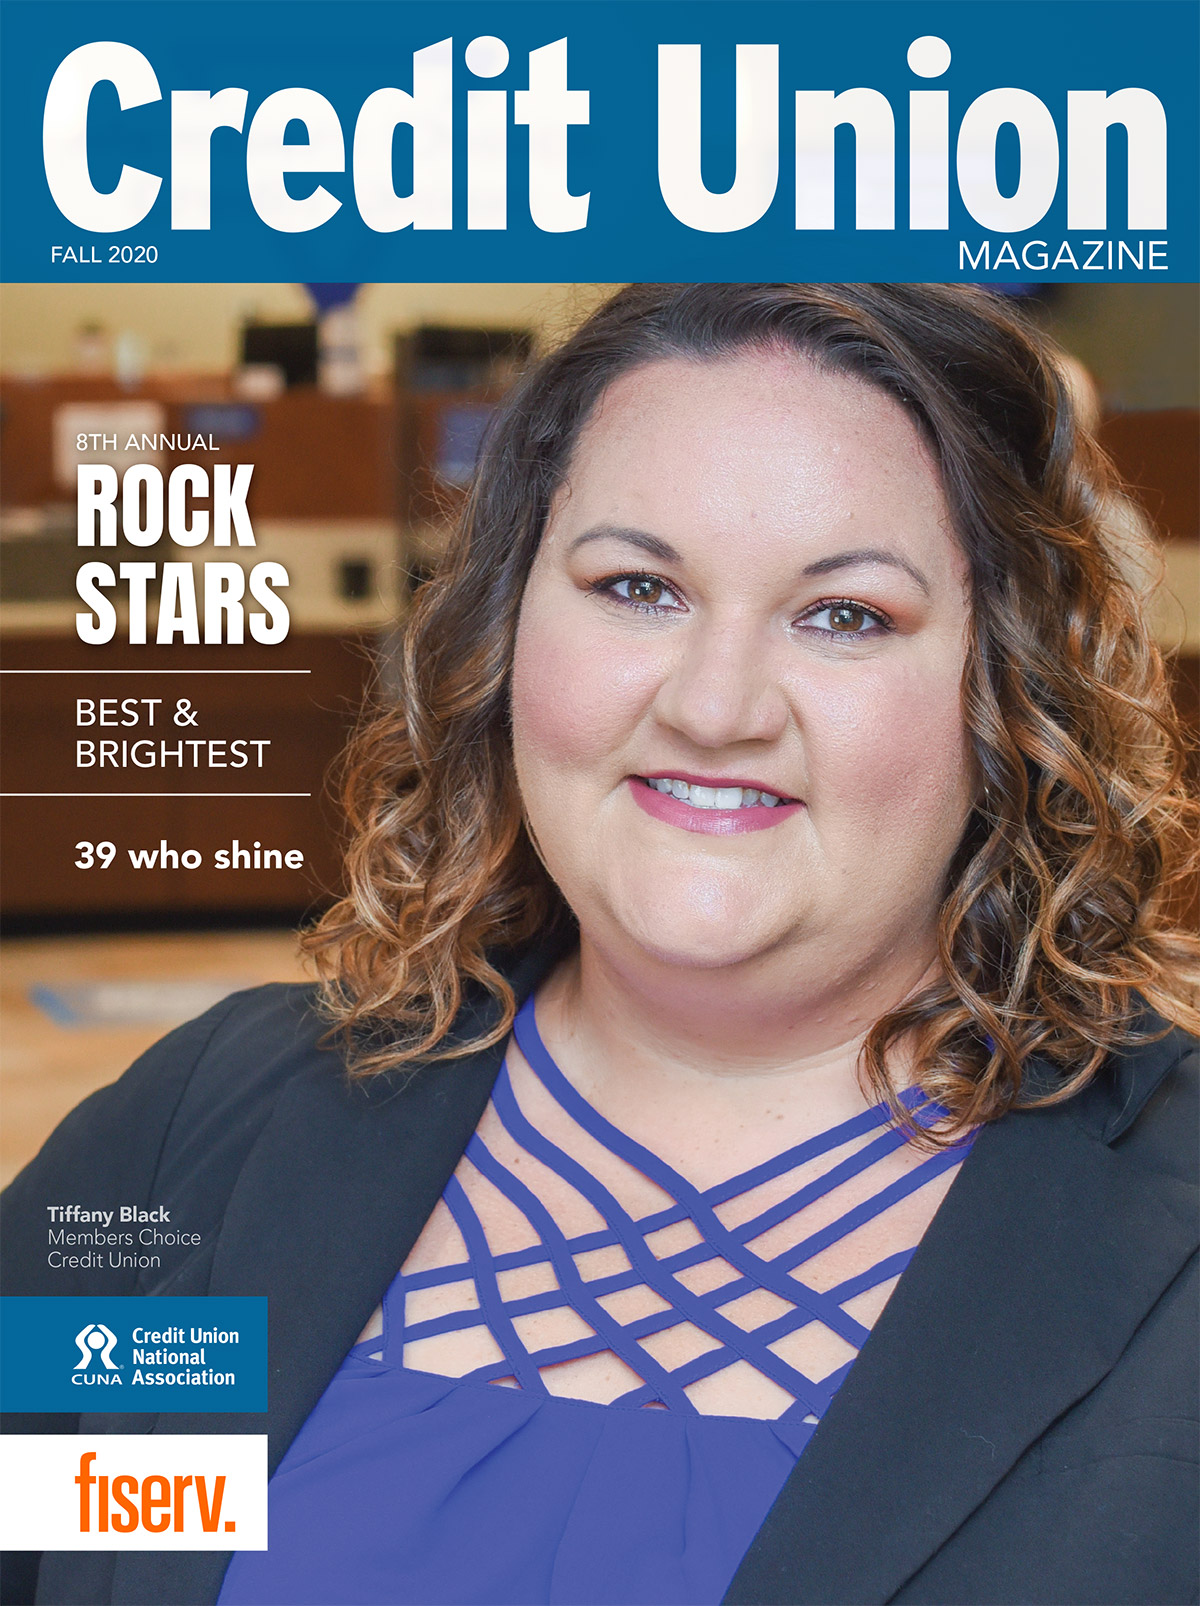 Credit Union Magazine's 2020 Rock Stars